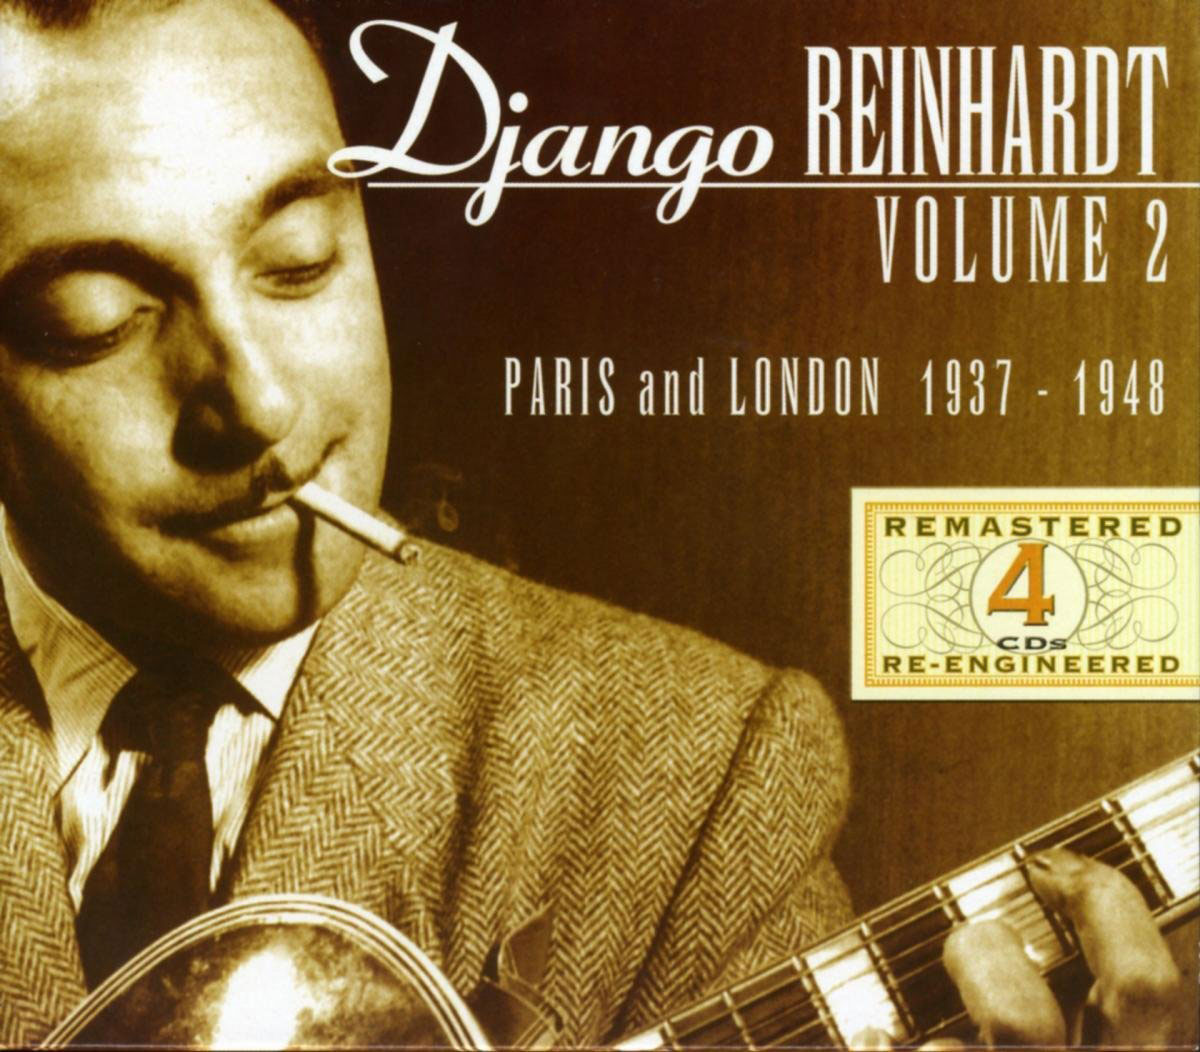 Django Reinhardt - Volume 2: Paris and London 1937-1948 4 CDs